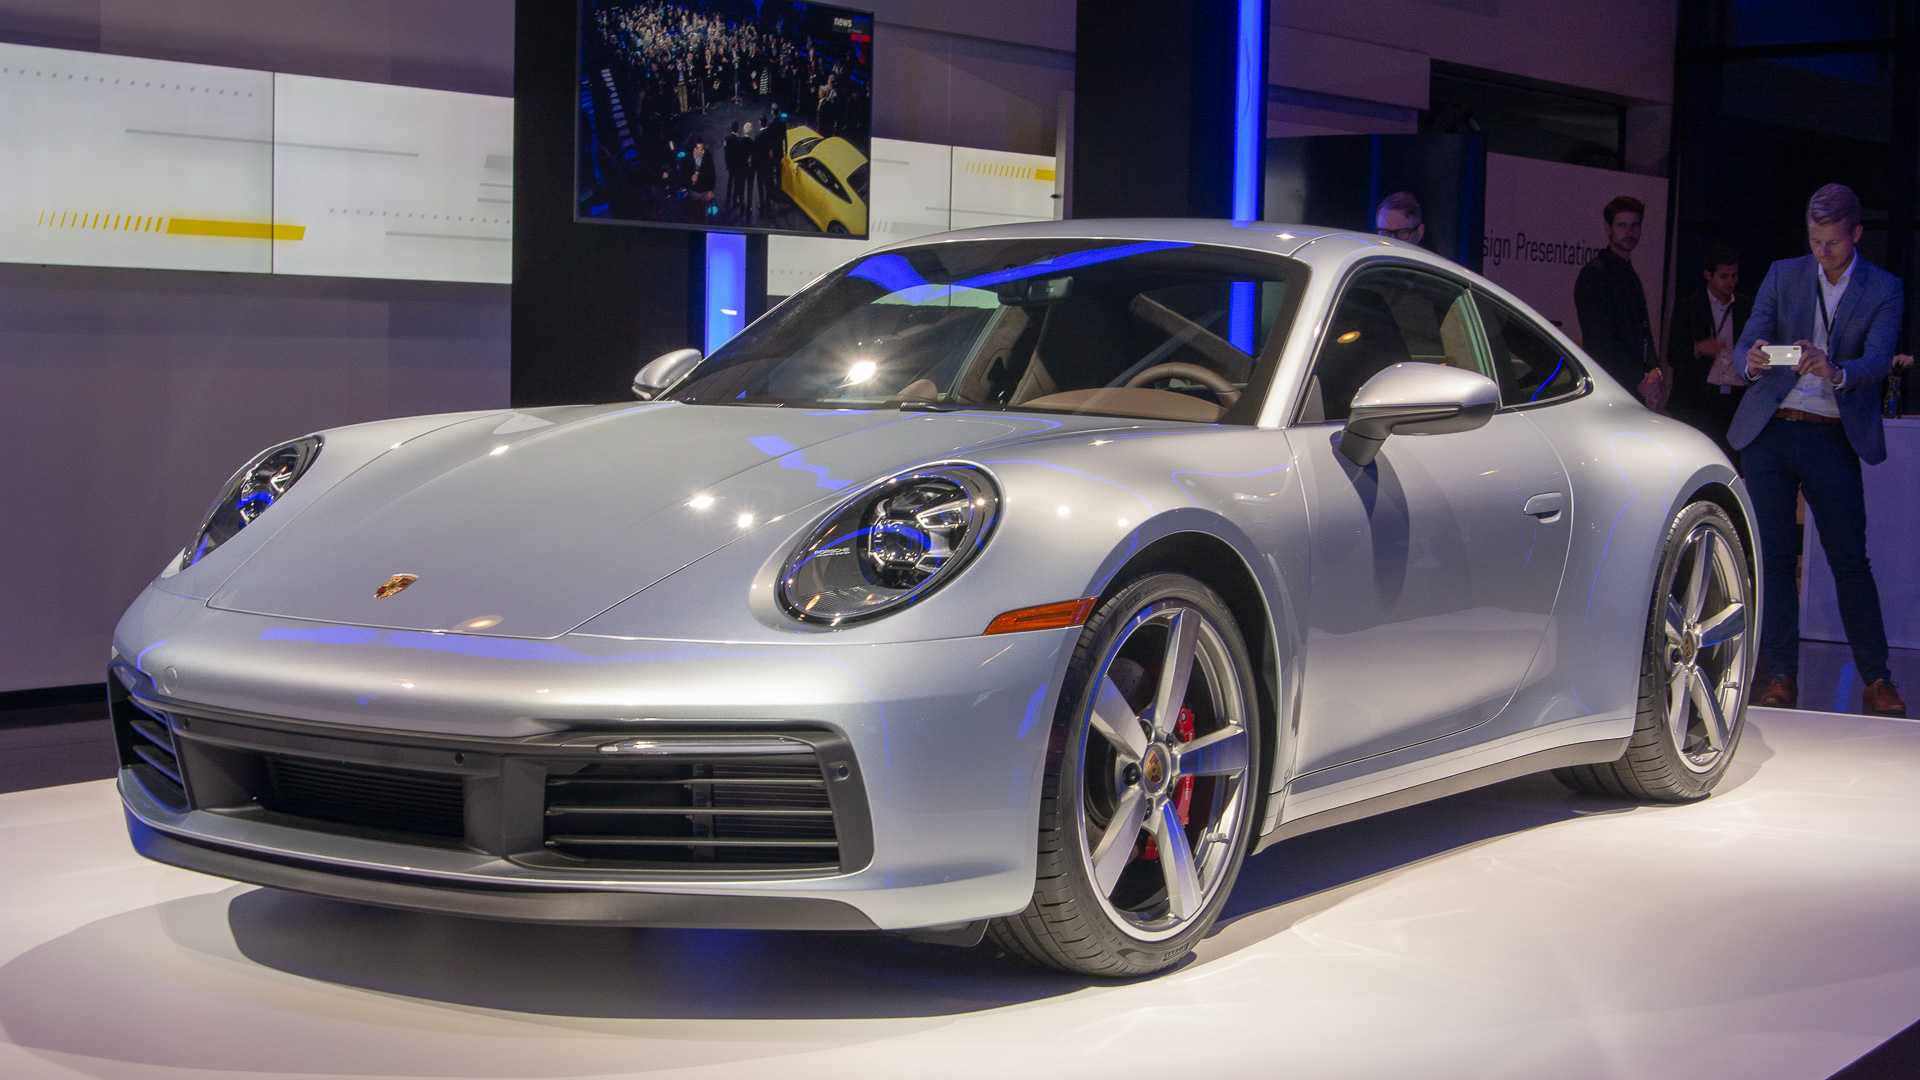 63 The Best 2020 Porsche 911 Carrera Price Design and Review